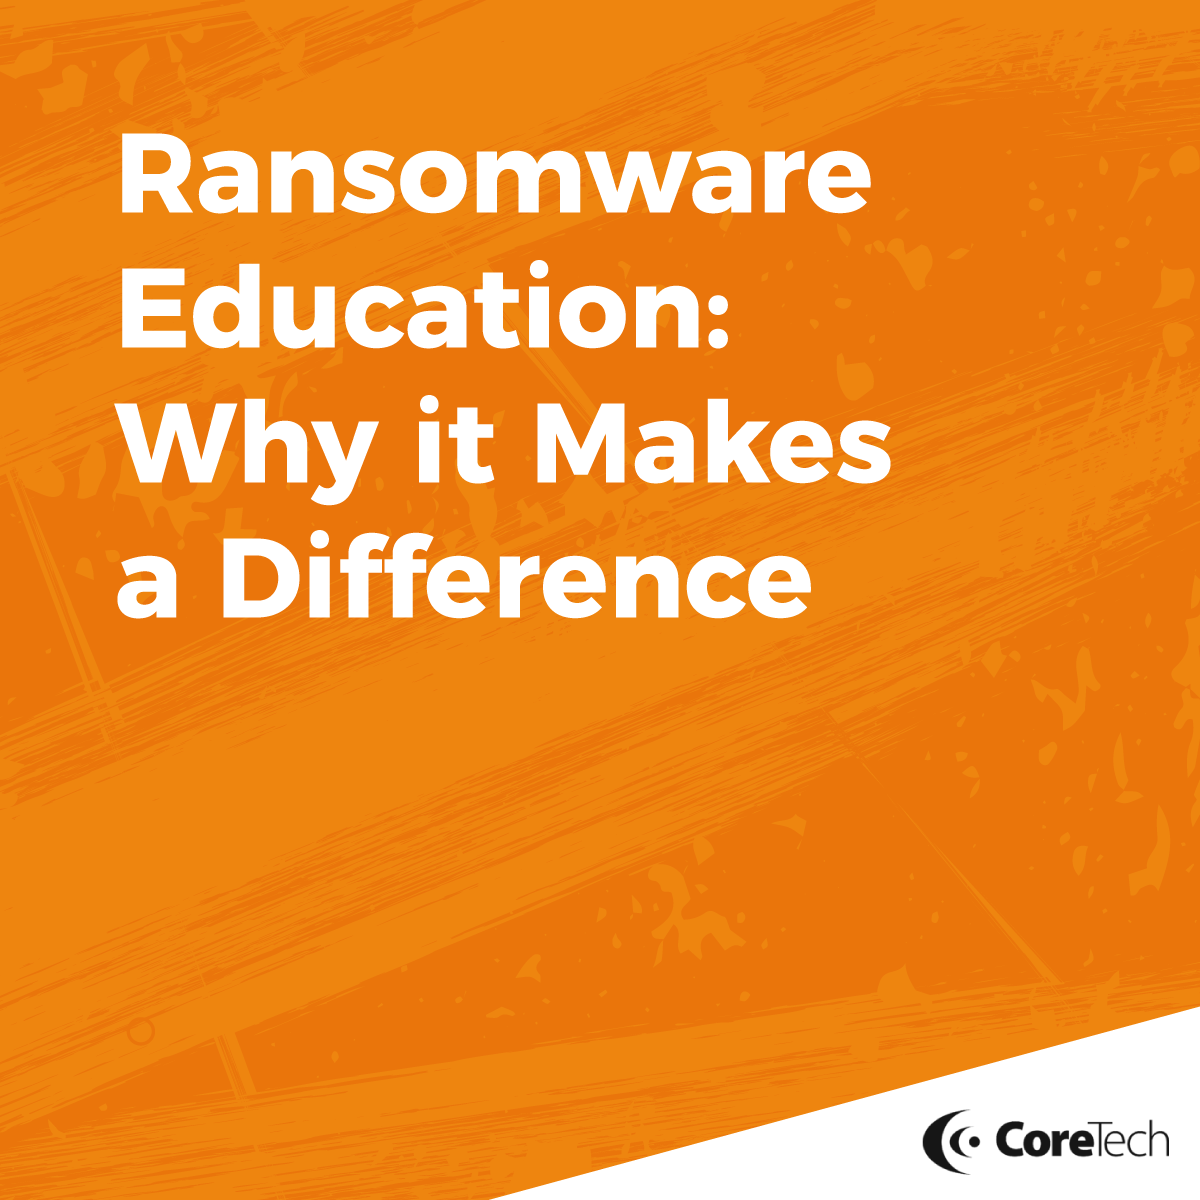 Ransomware Education and Why it Makes a Difference - Featured Image